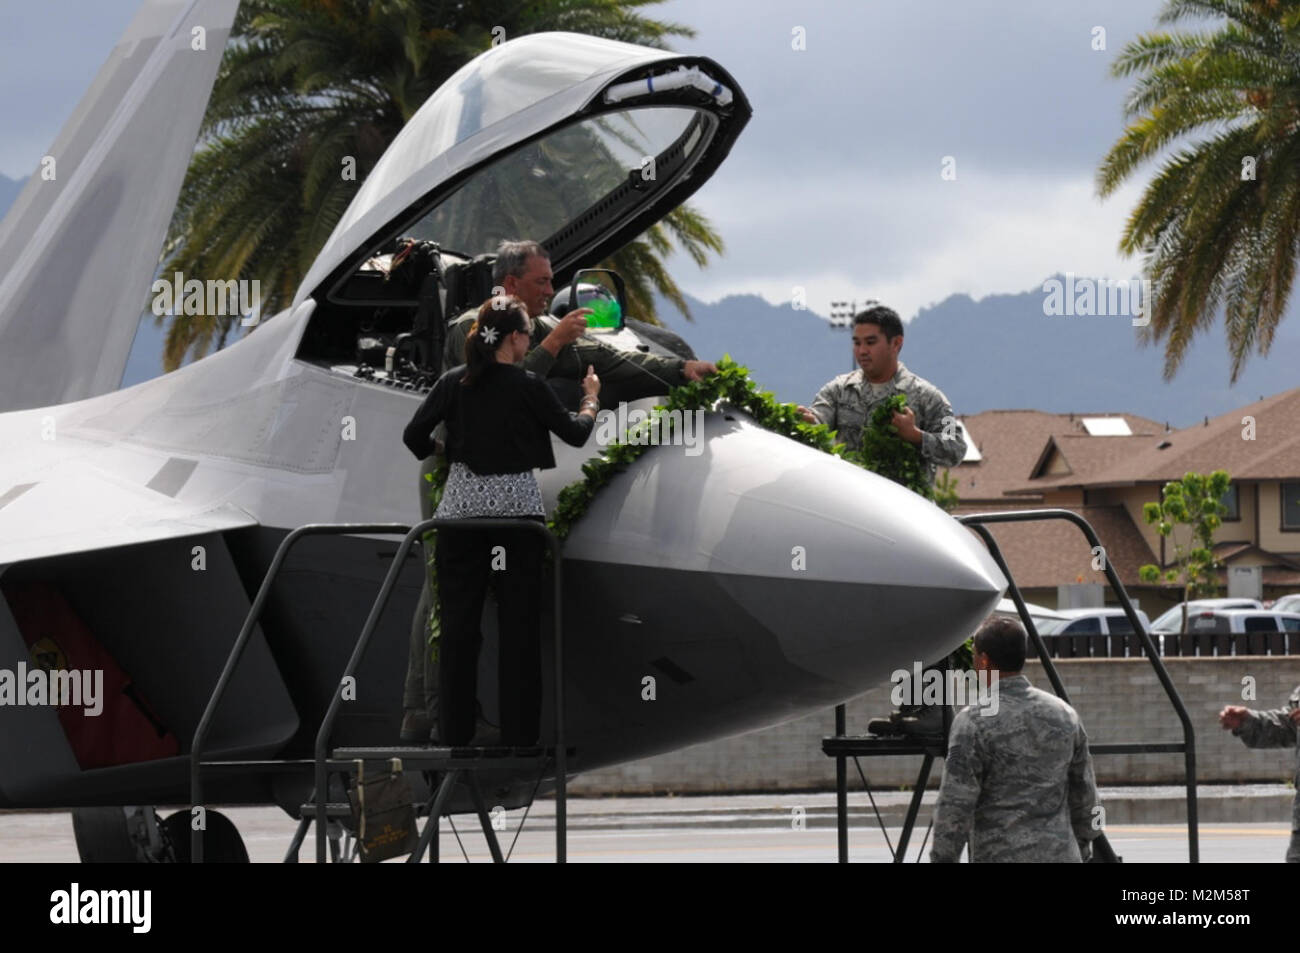 Lt Col Christopher Faurot, his spouse and SSgt Ben Nitta drape the Maile lei over the F-22 to commemorate the significant - Stock Image